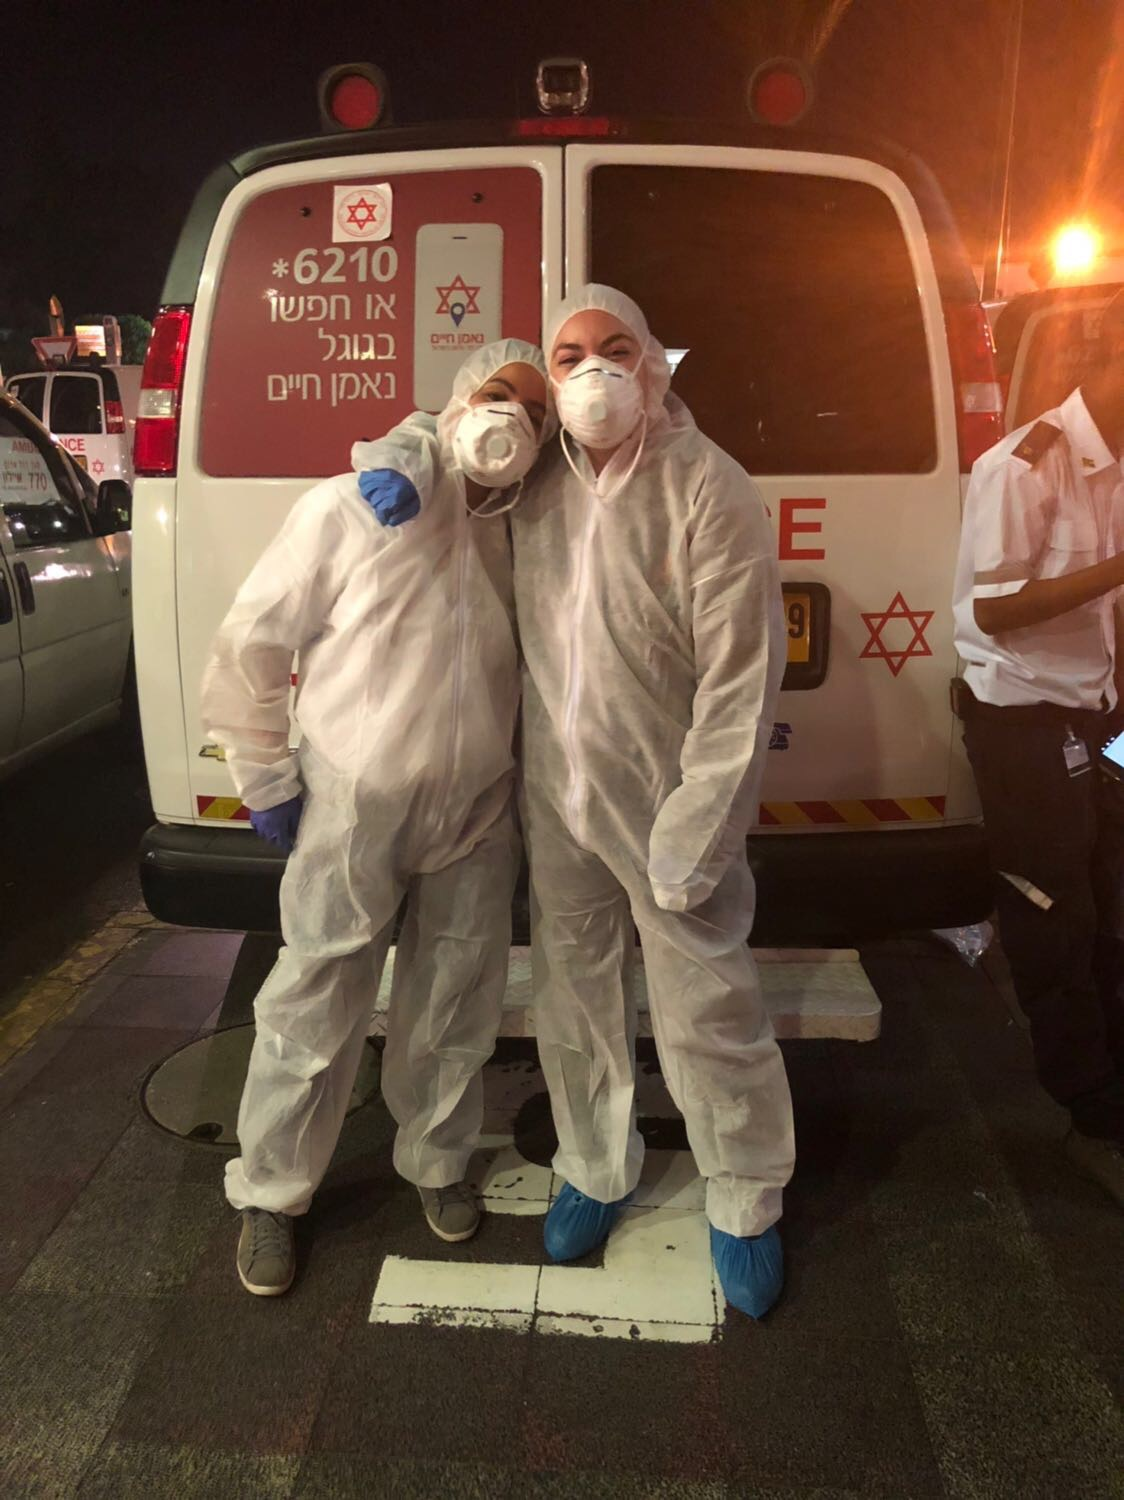 Image of Tess Seltzer Wearing biohazard protection suits after transporting a patient with an infectious disease.